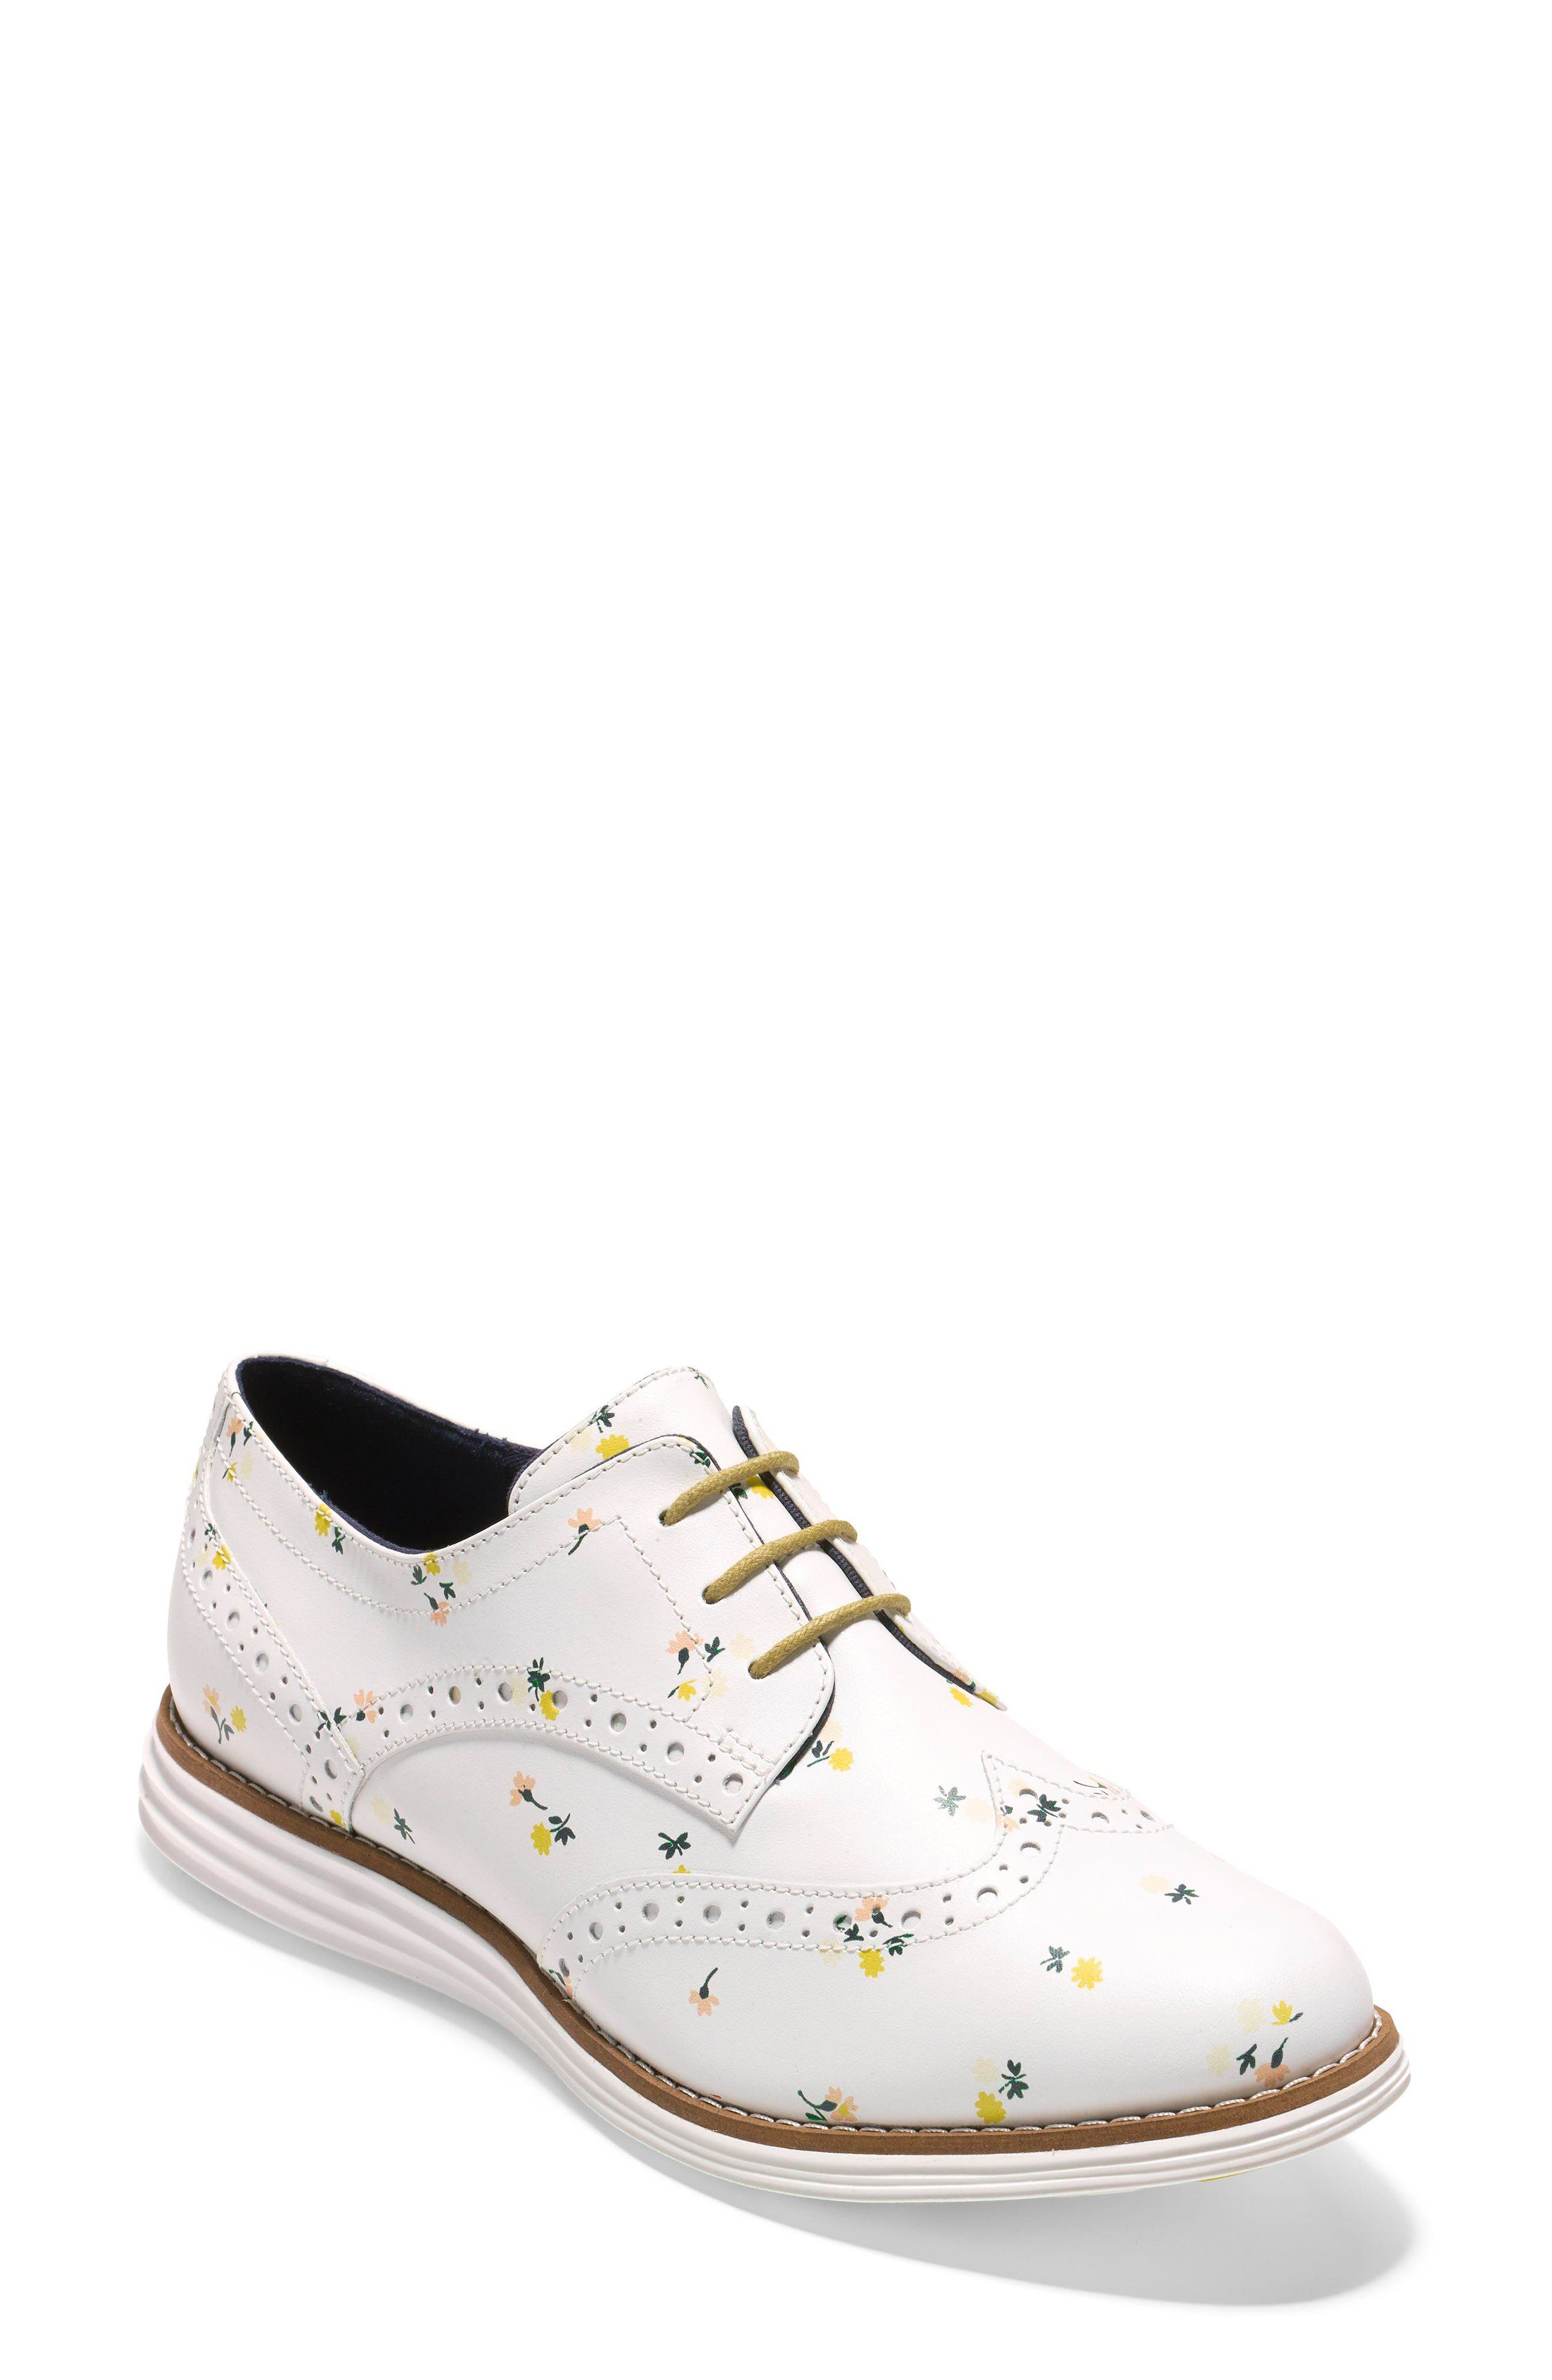 'Original Grand' Wingtip Oxford,                         Main,                         color, Optic White Printed Leather